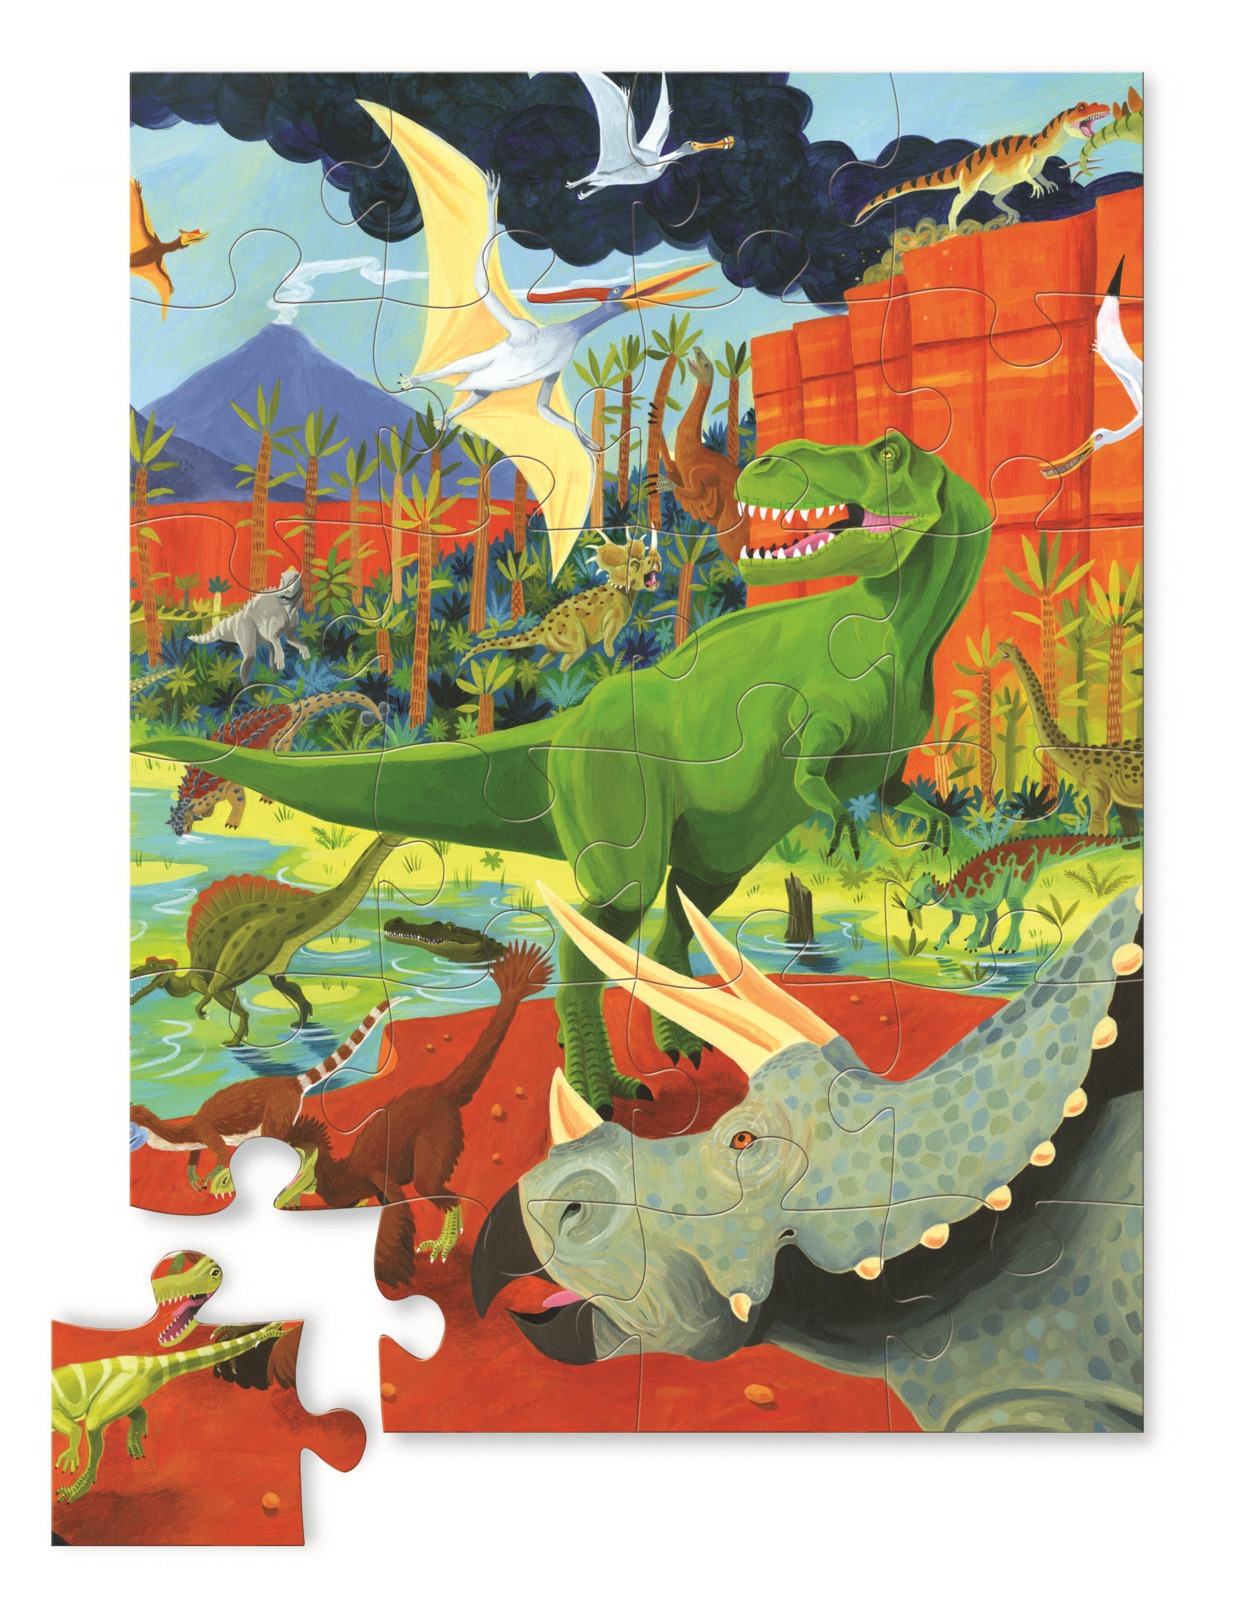 Crocodile Creek: Land of Dinosaurs Jigsaw Puzzle - 24pc image